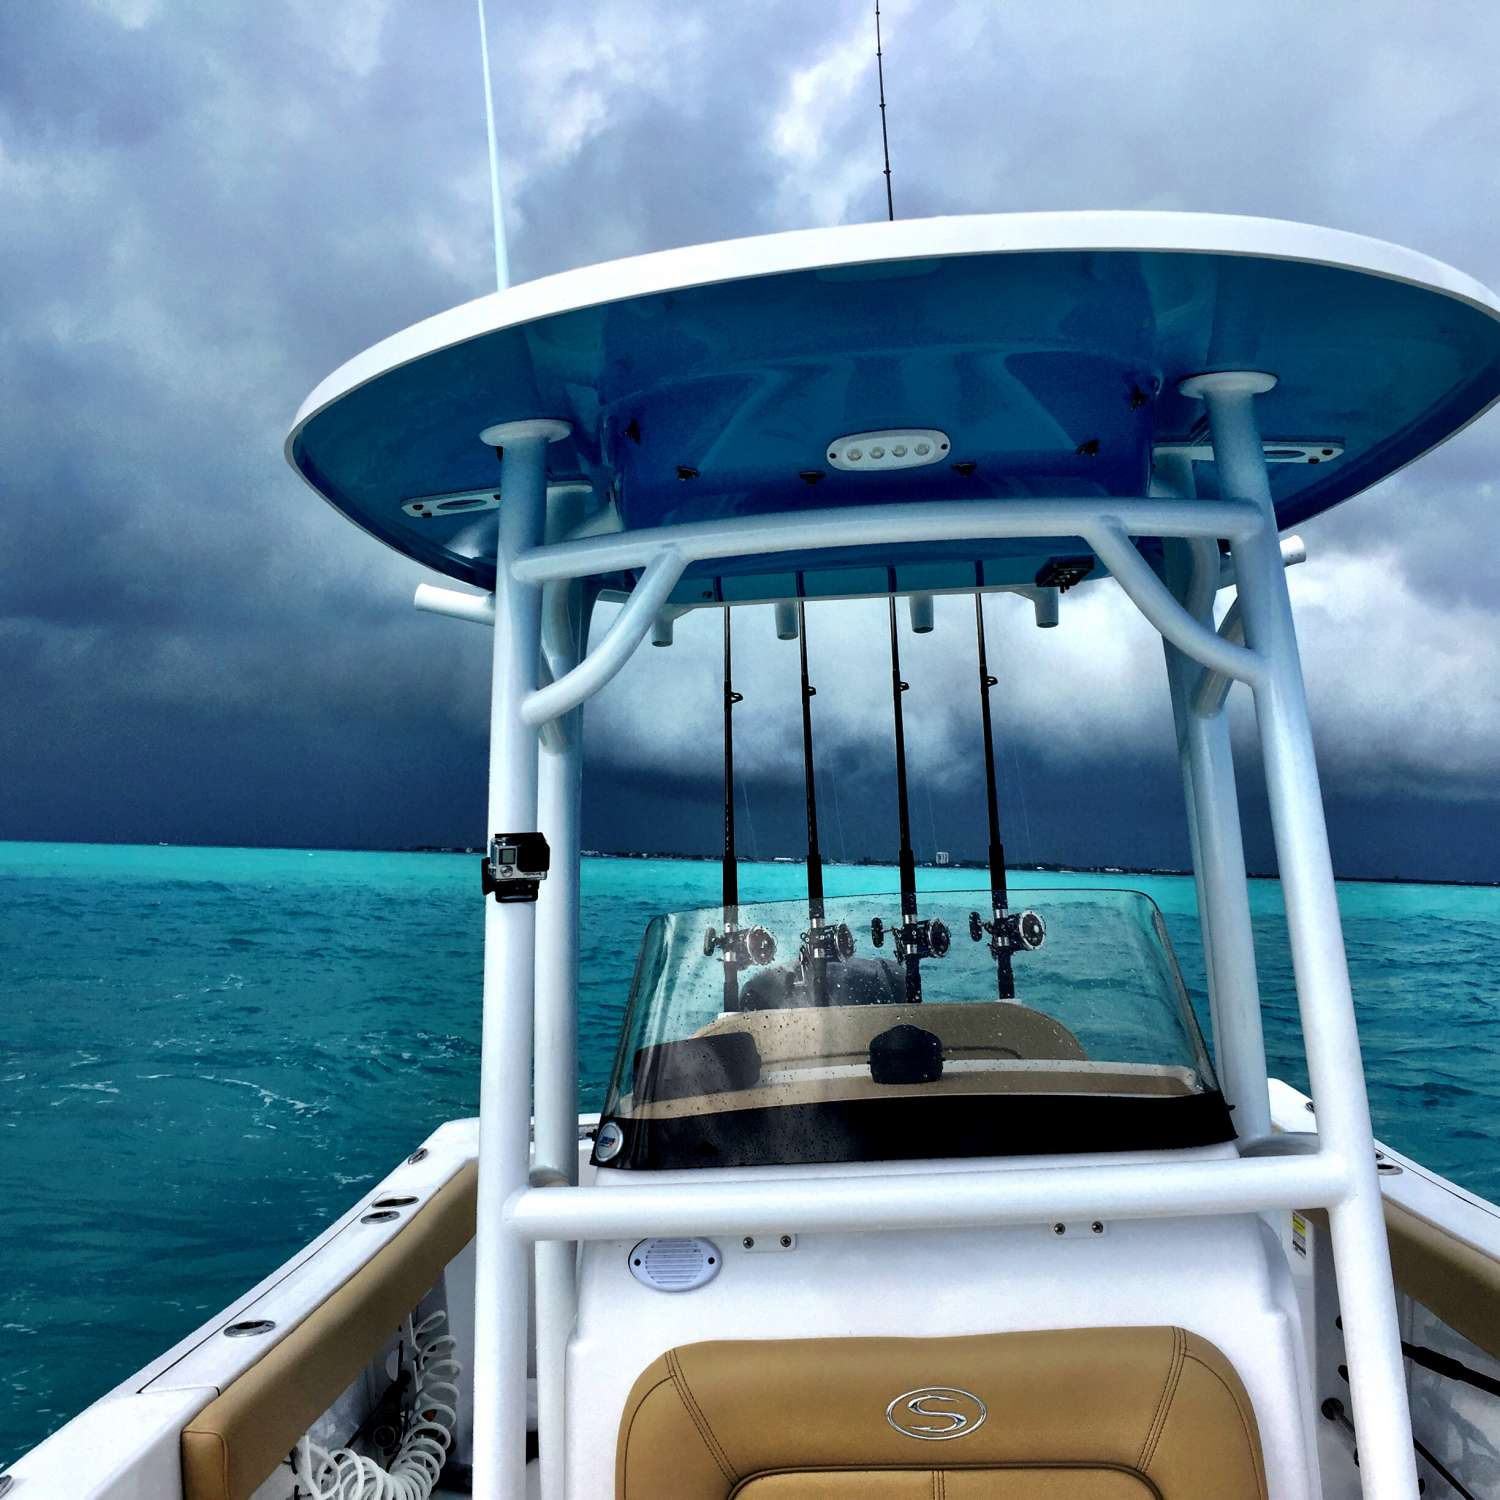 Title: Keys Afternoon Shower - On board their Sportsman Open 232 Center Console - Location: Jacksonville, Florida. Participating in the Photo Contest #SportsmanJanuary2017